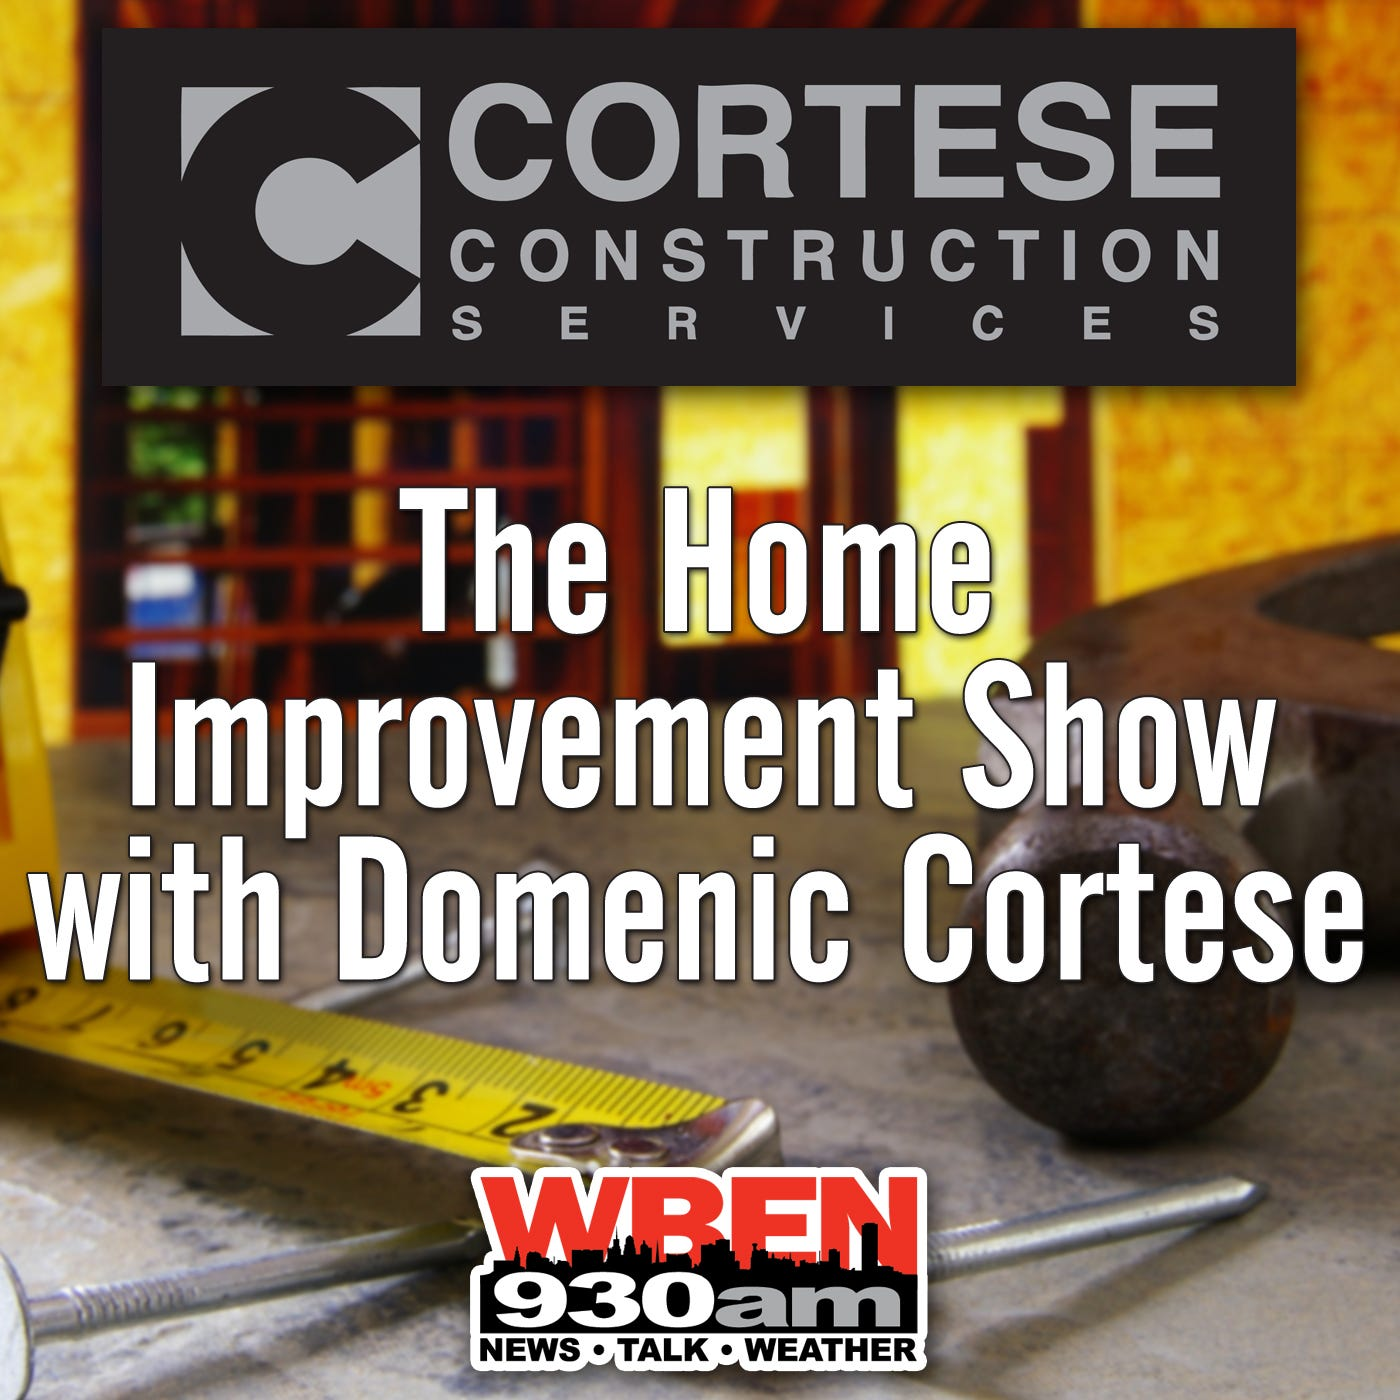 The Home Improvement Show with Domenic Cortese